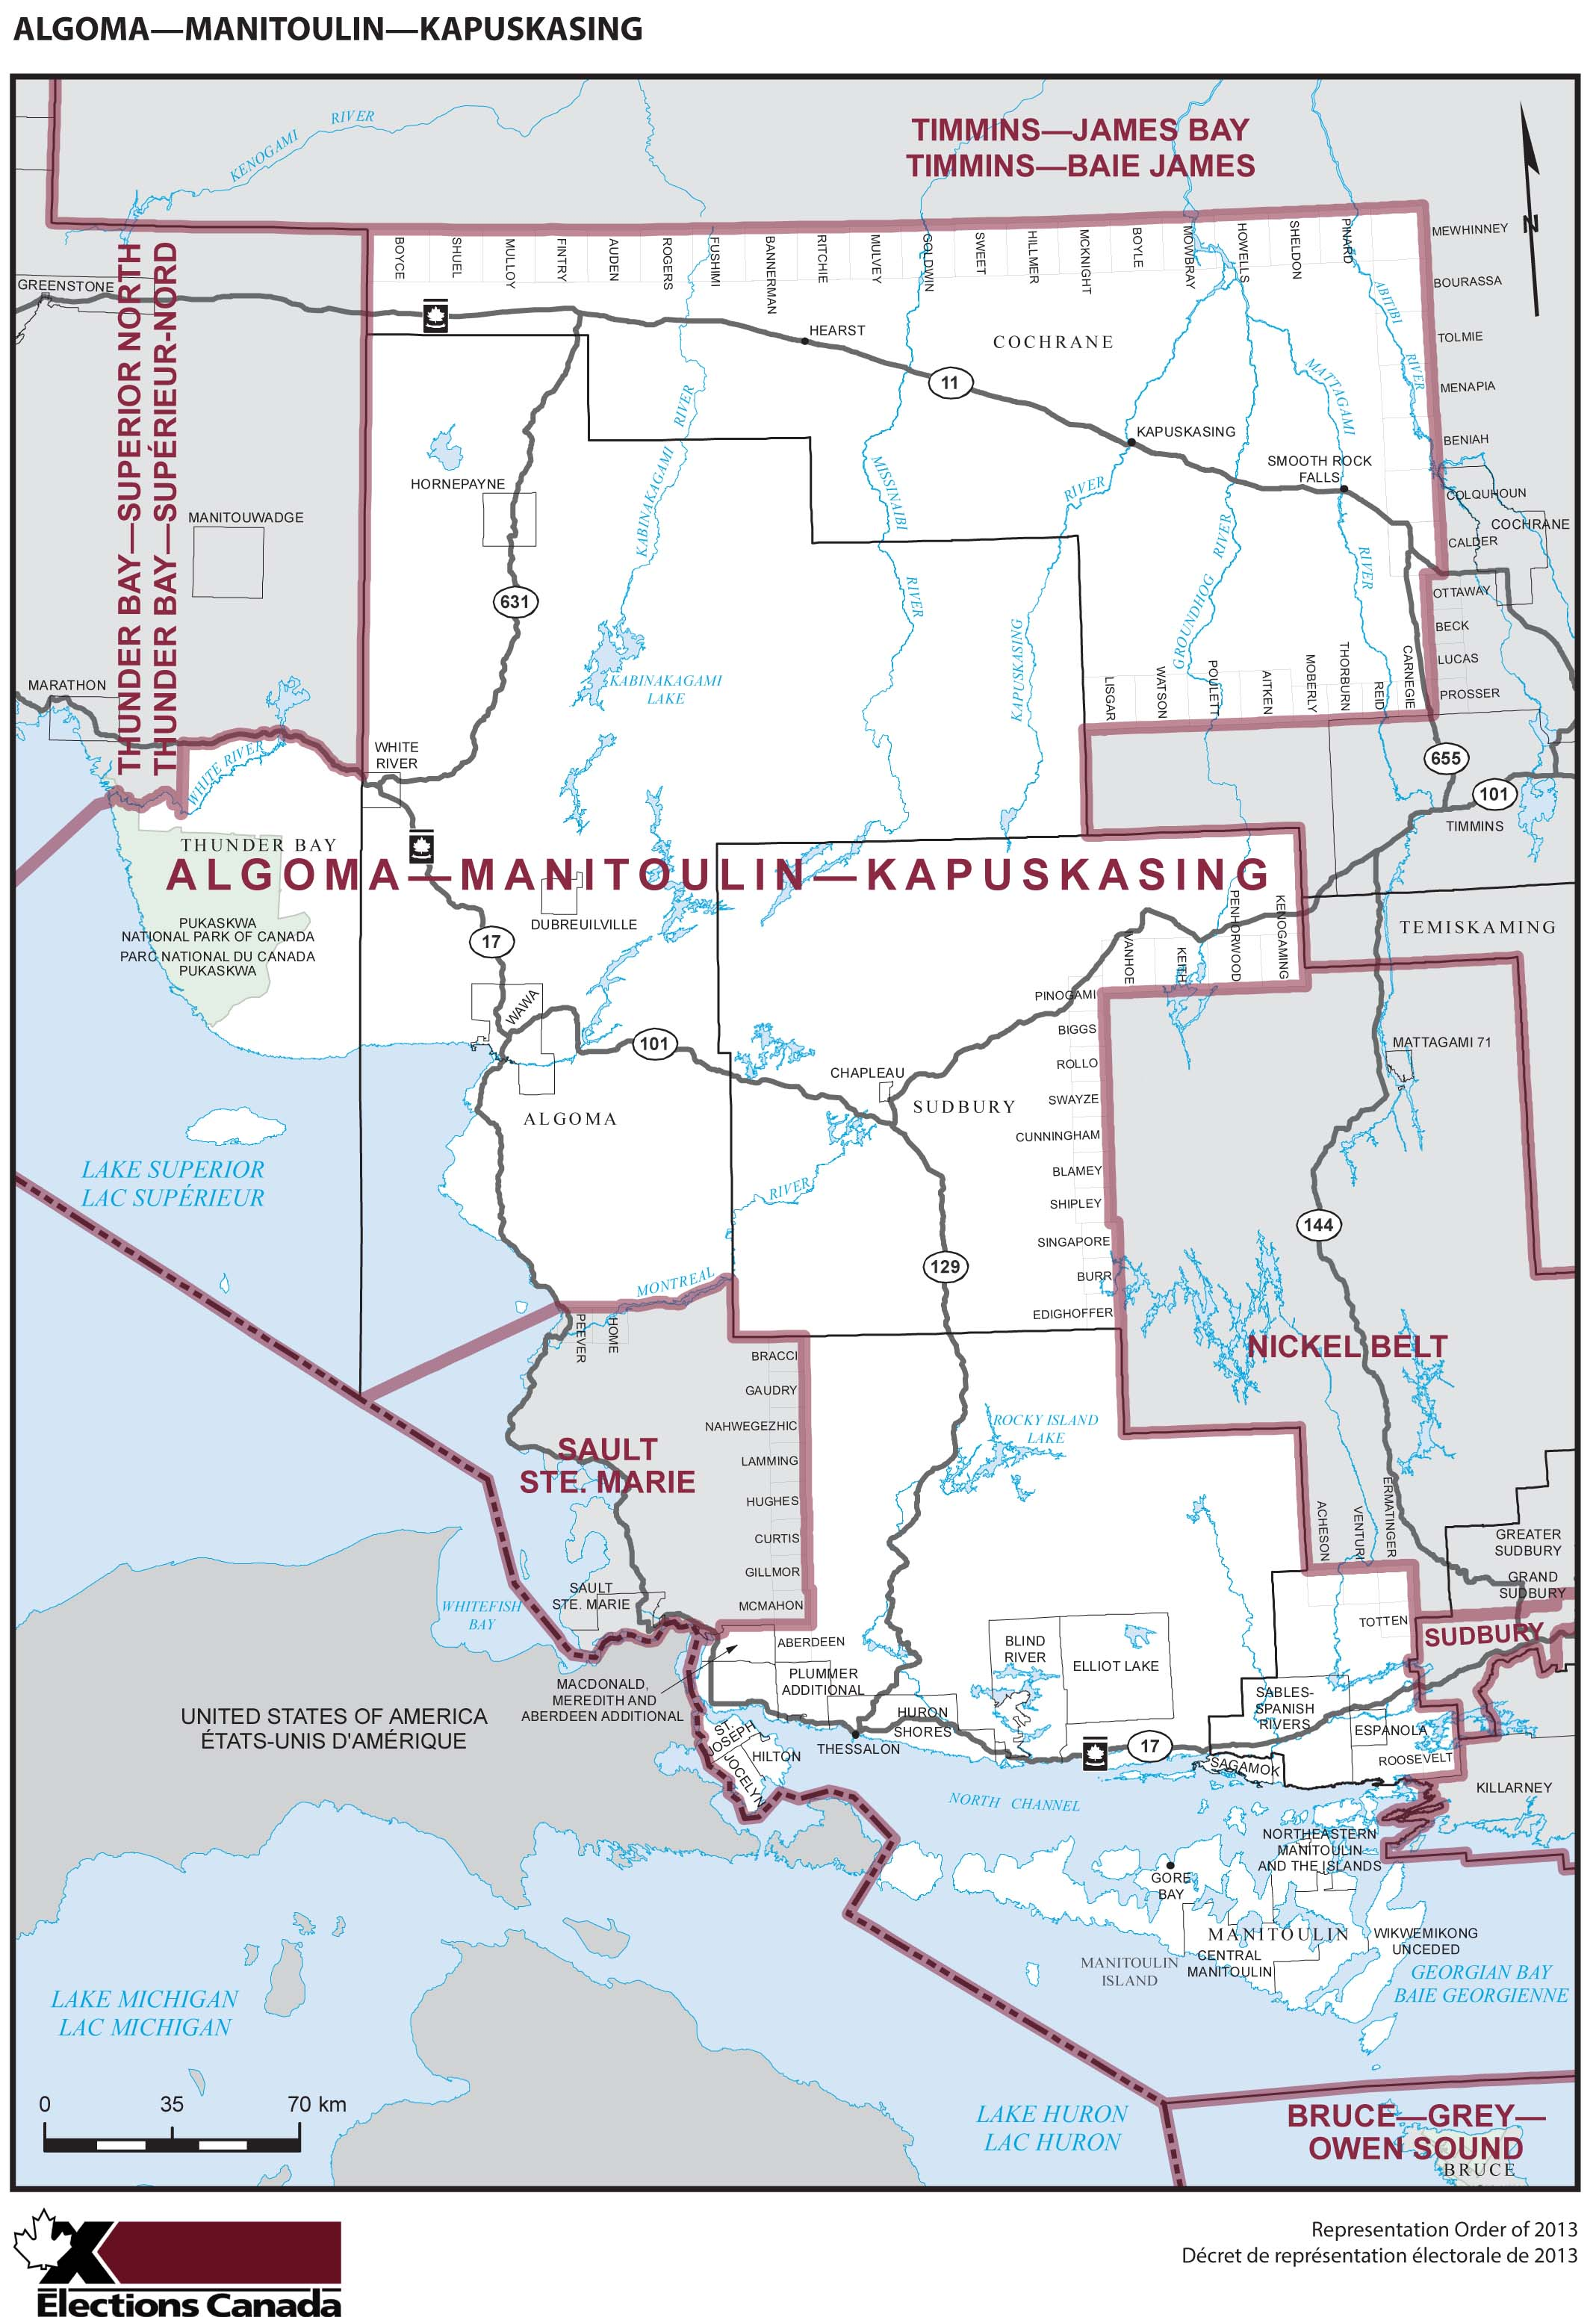 Map: Algoma--Manitoulin--Kapuskasing, Federal electoral district, 2013 Representation Order (in white), Ontario